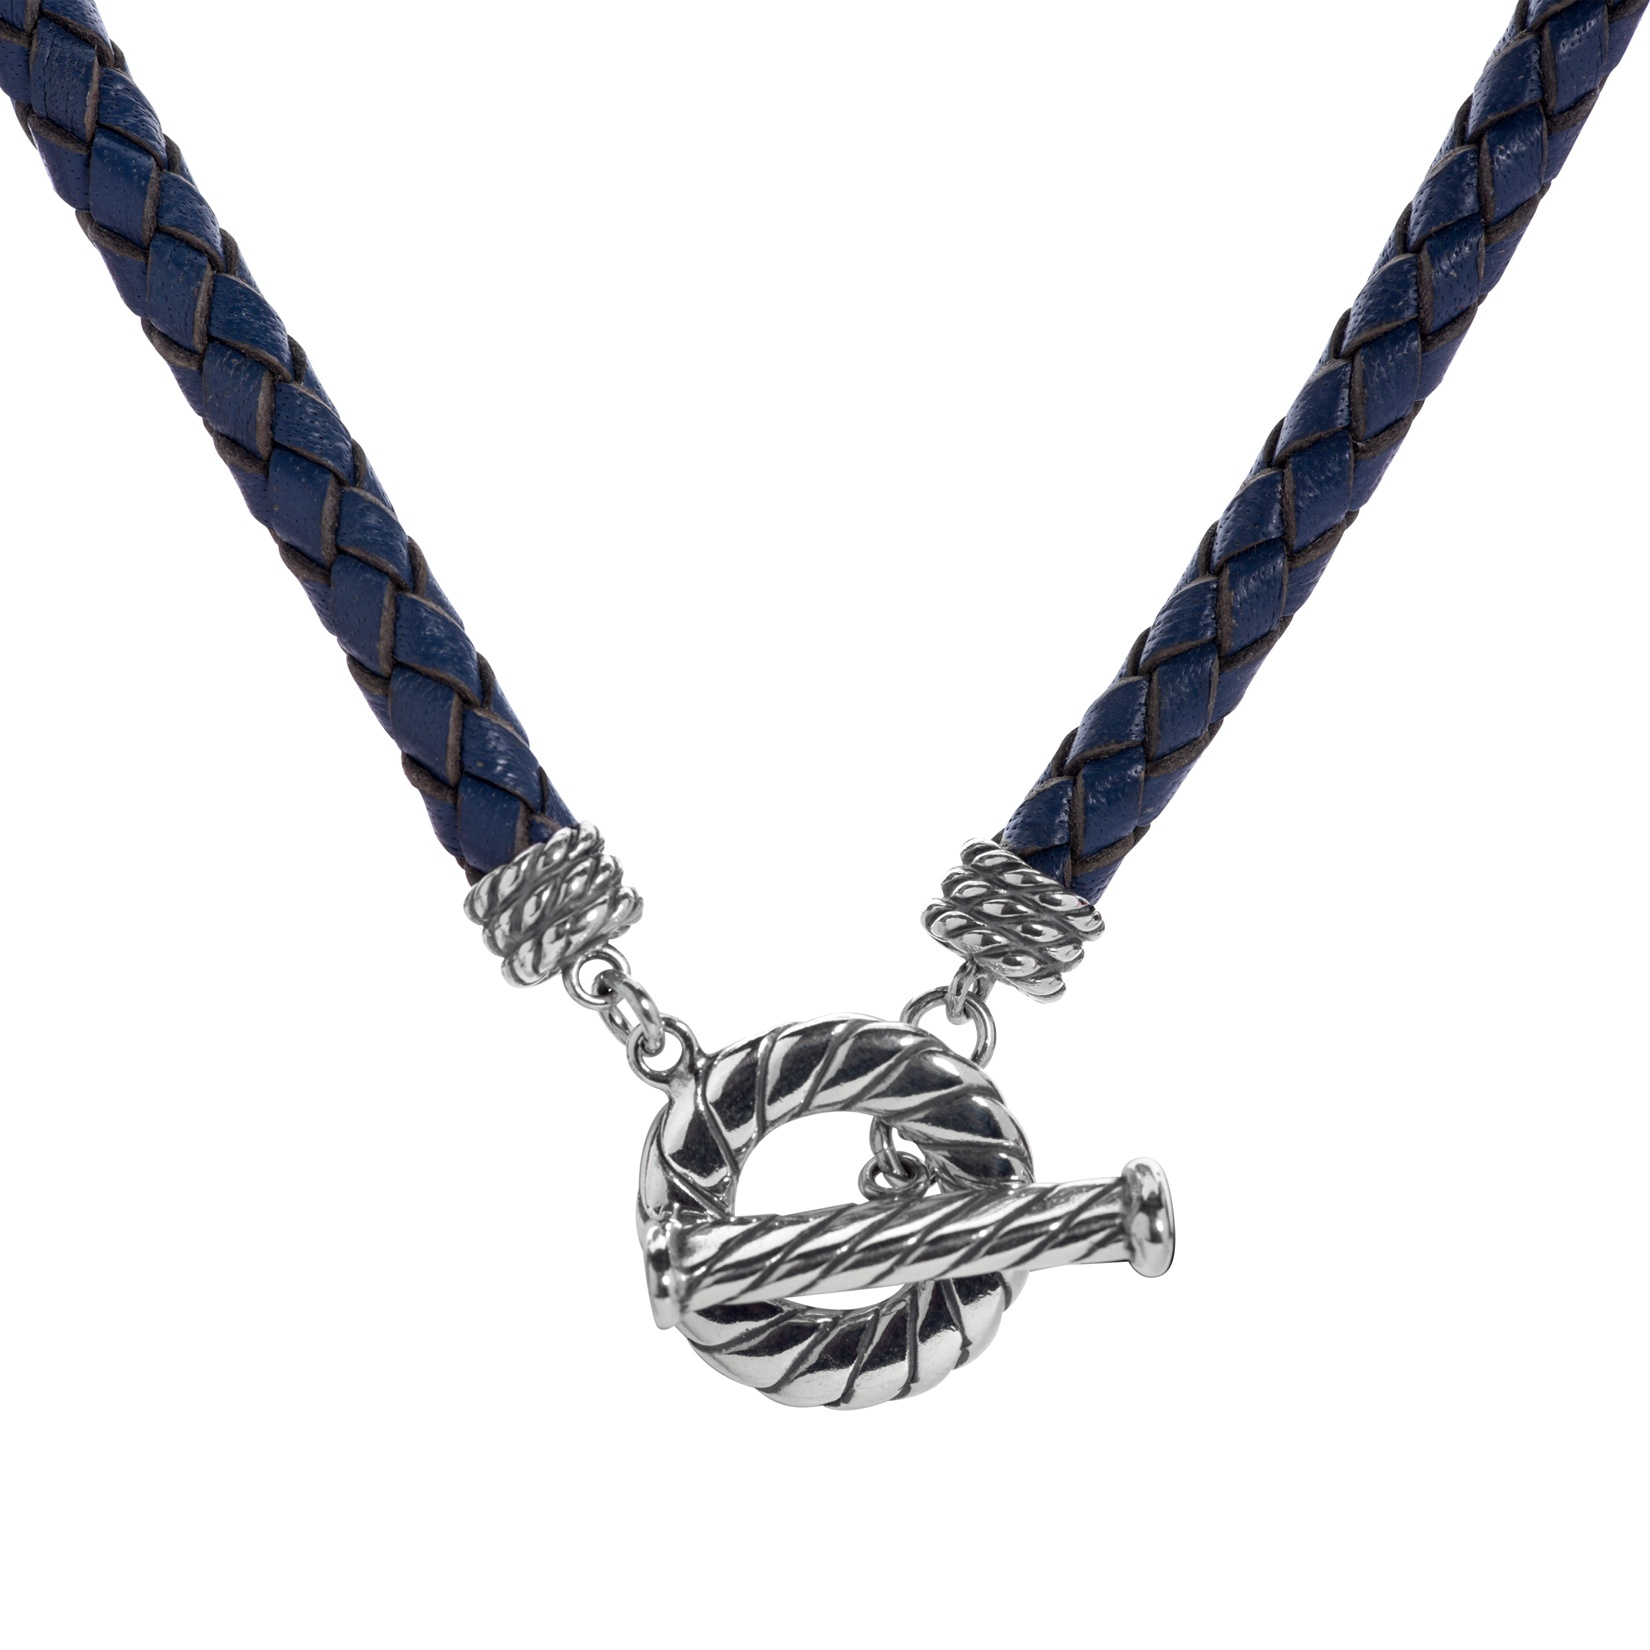 17 Inch Blue Leather Toggle Necklace